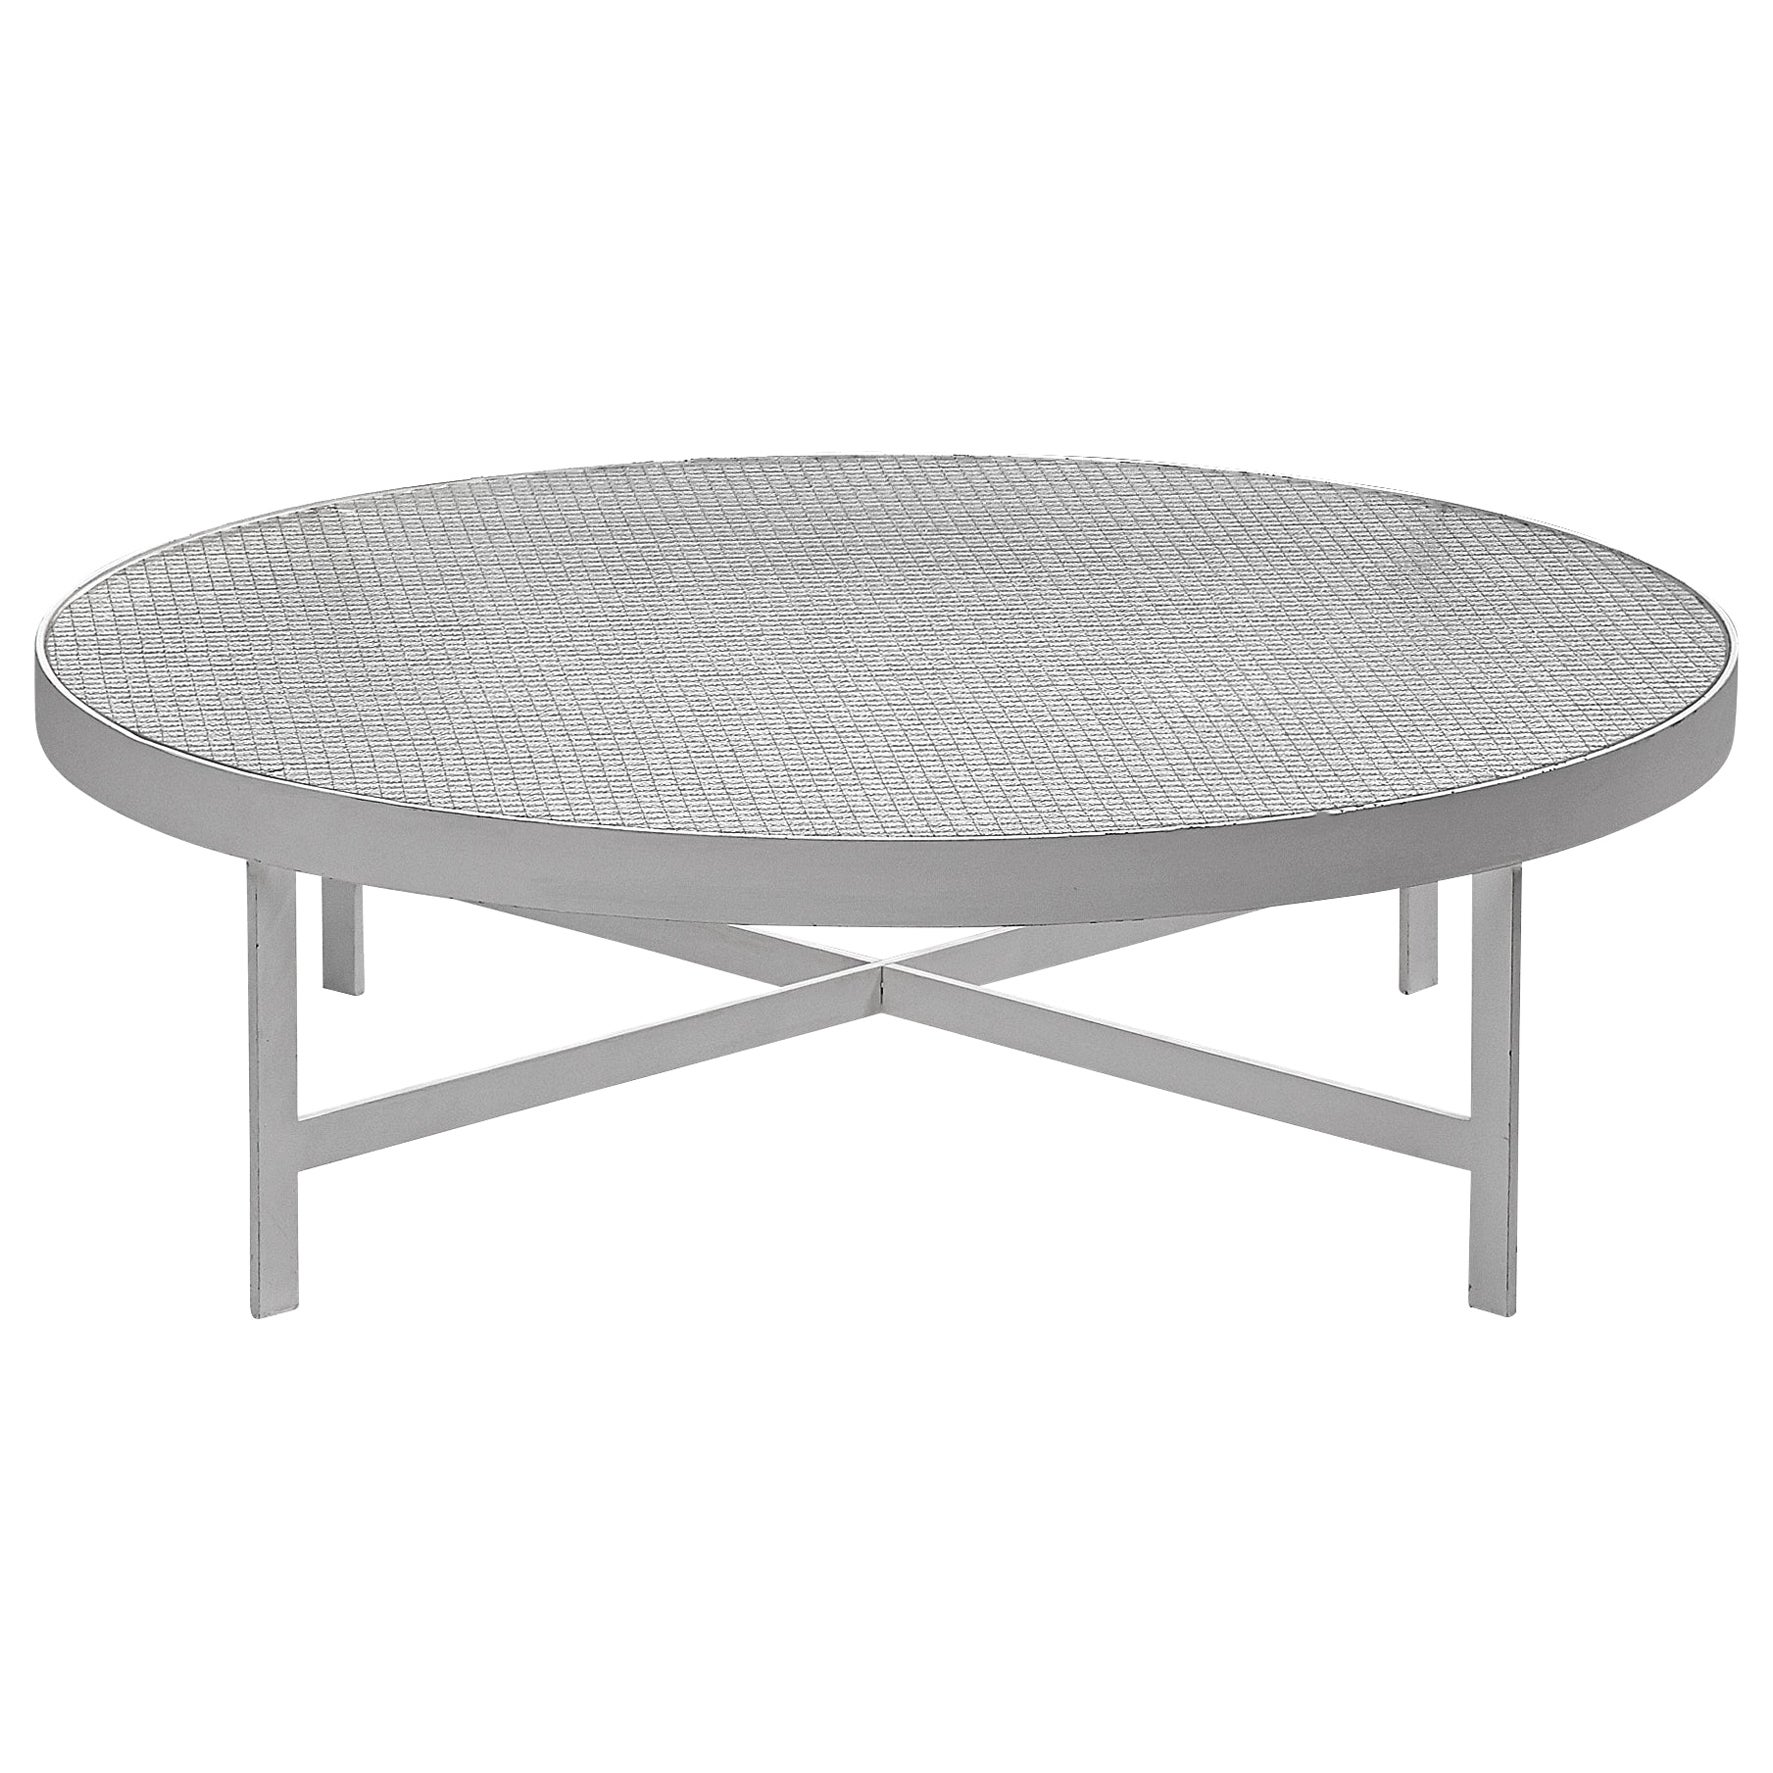 Janni Van Pelt Round Coffee Table in White Metal and Glass